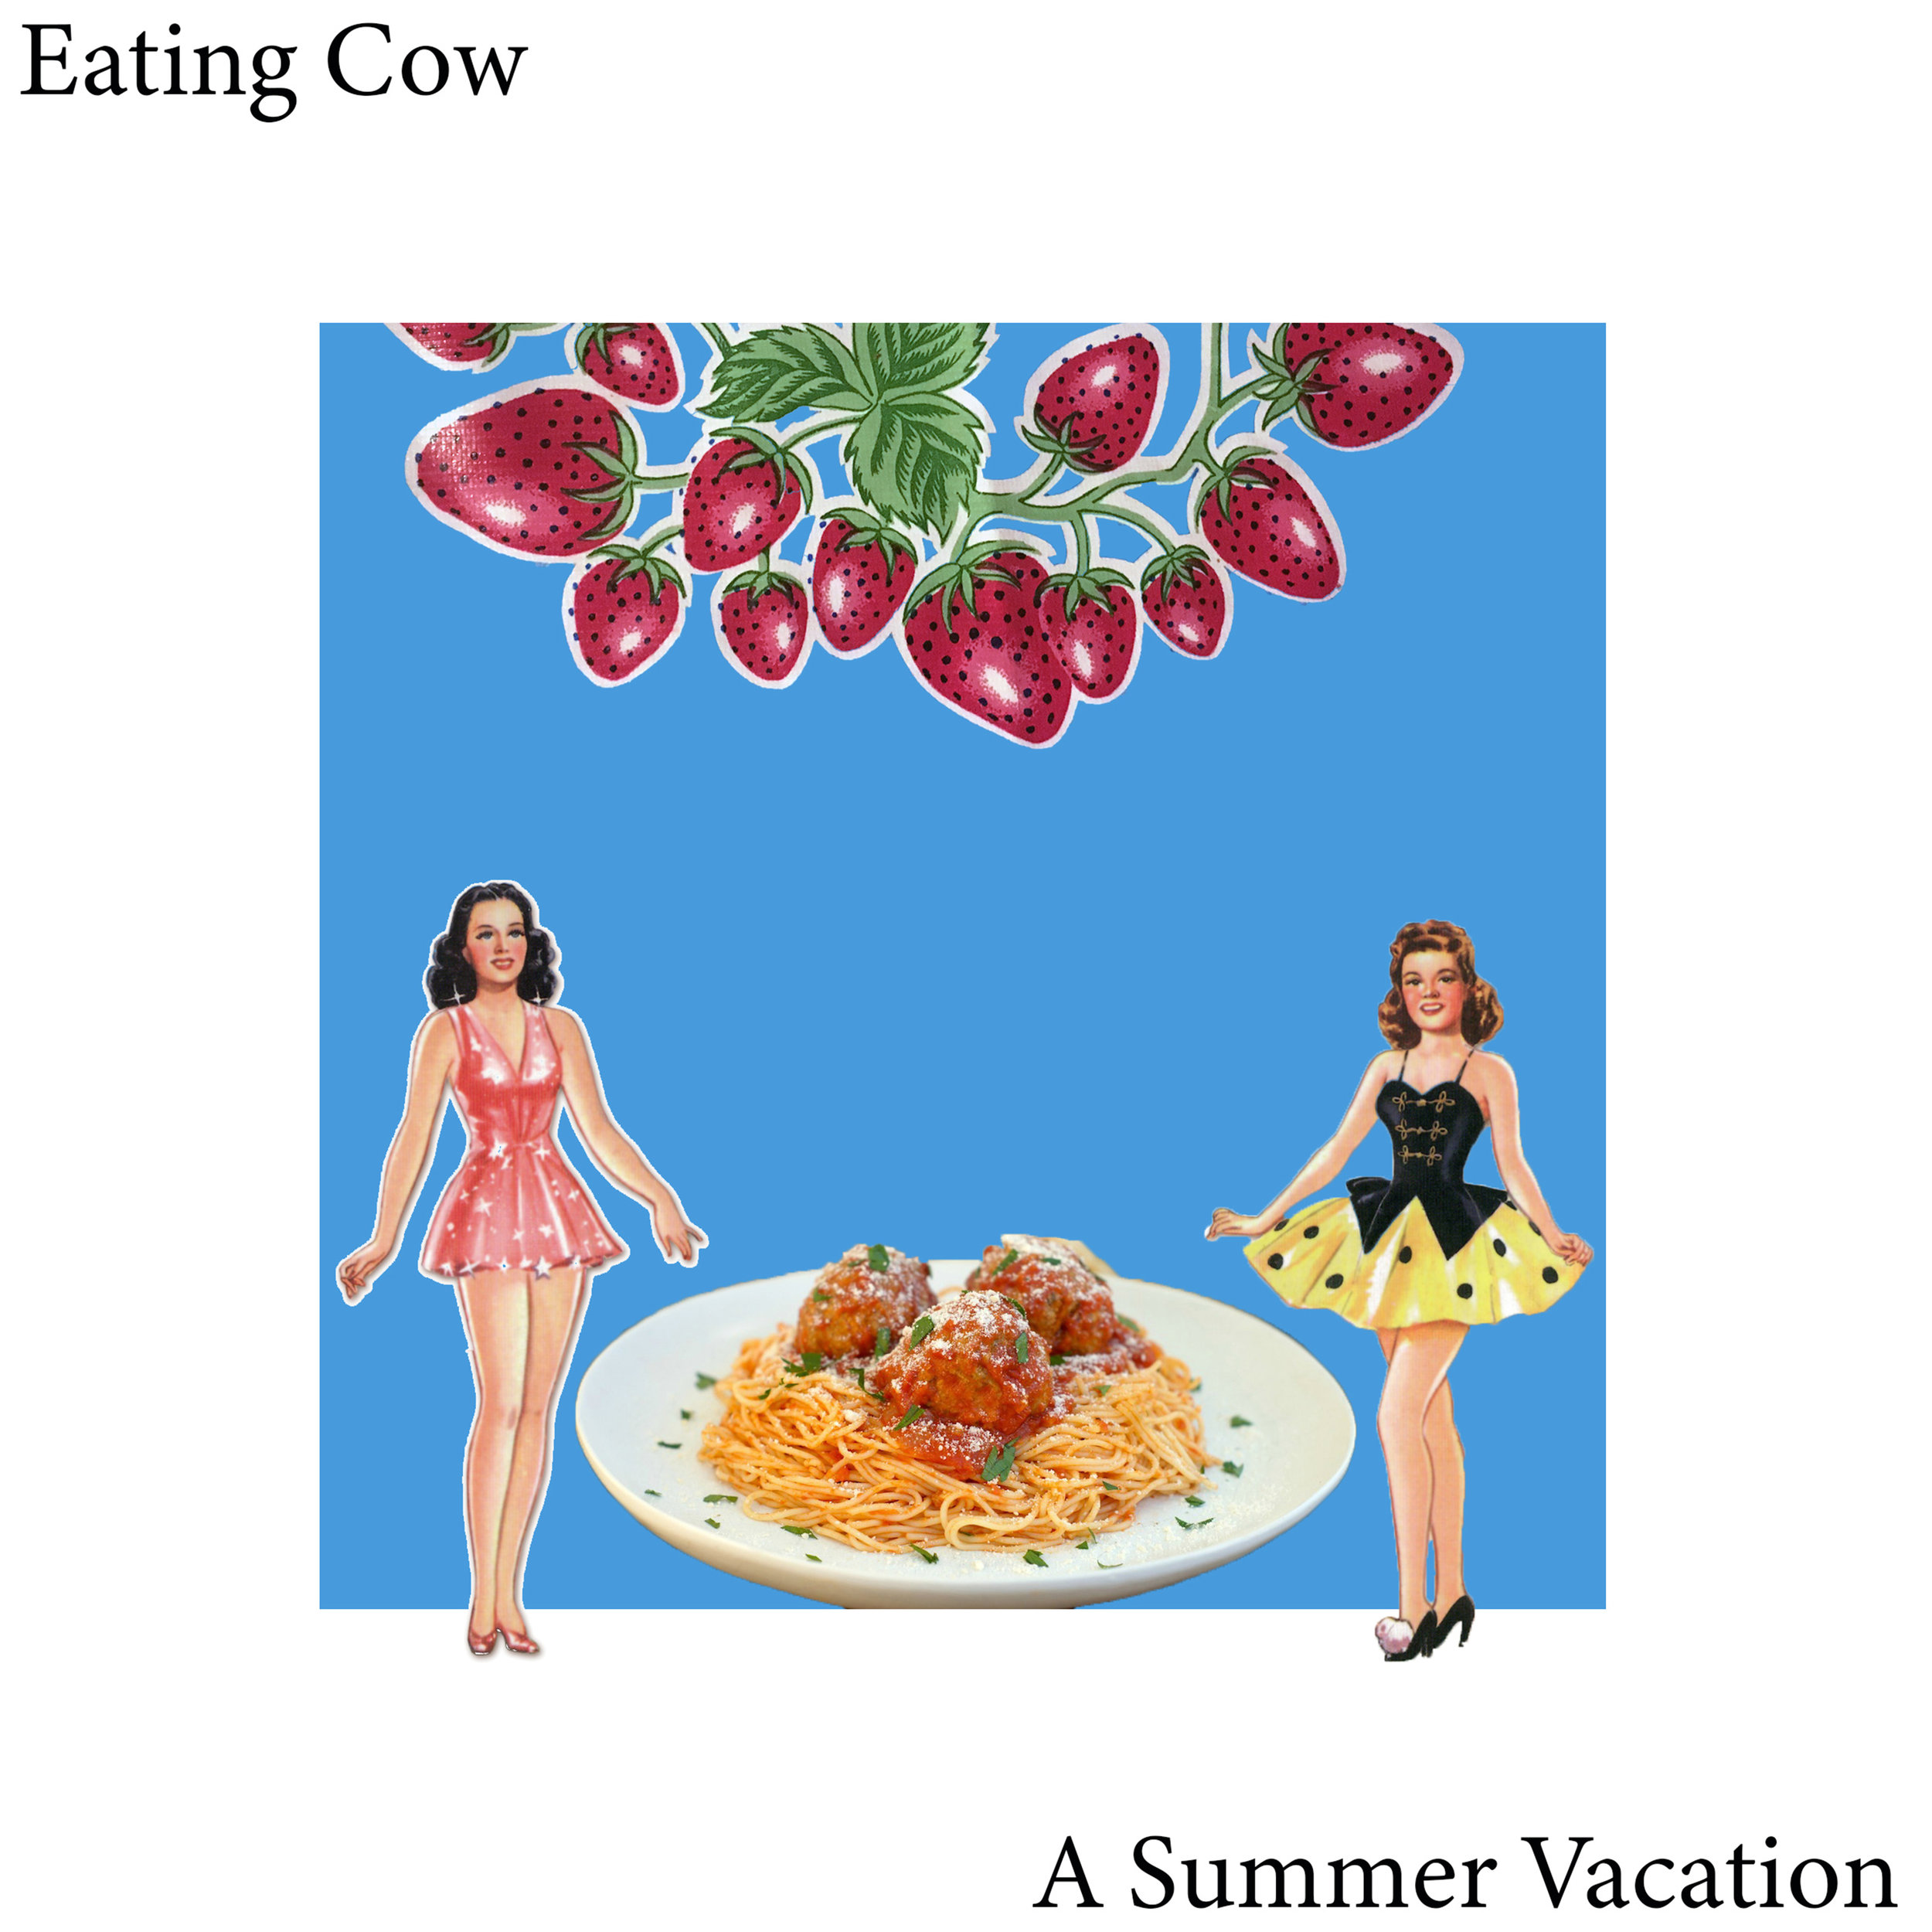 A Summer Vacation Eating Cow